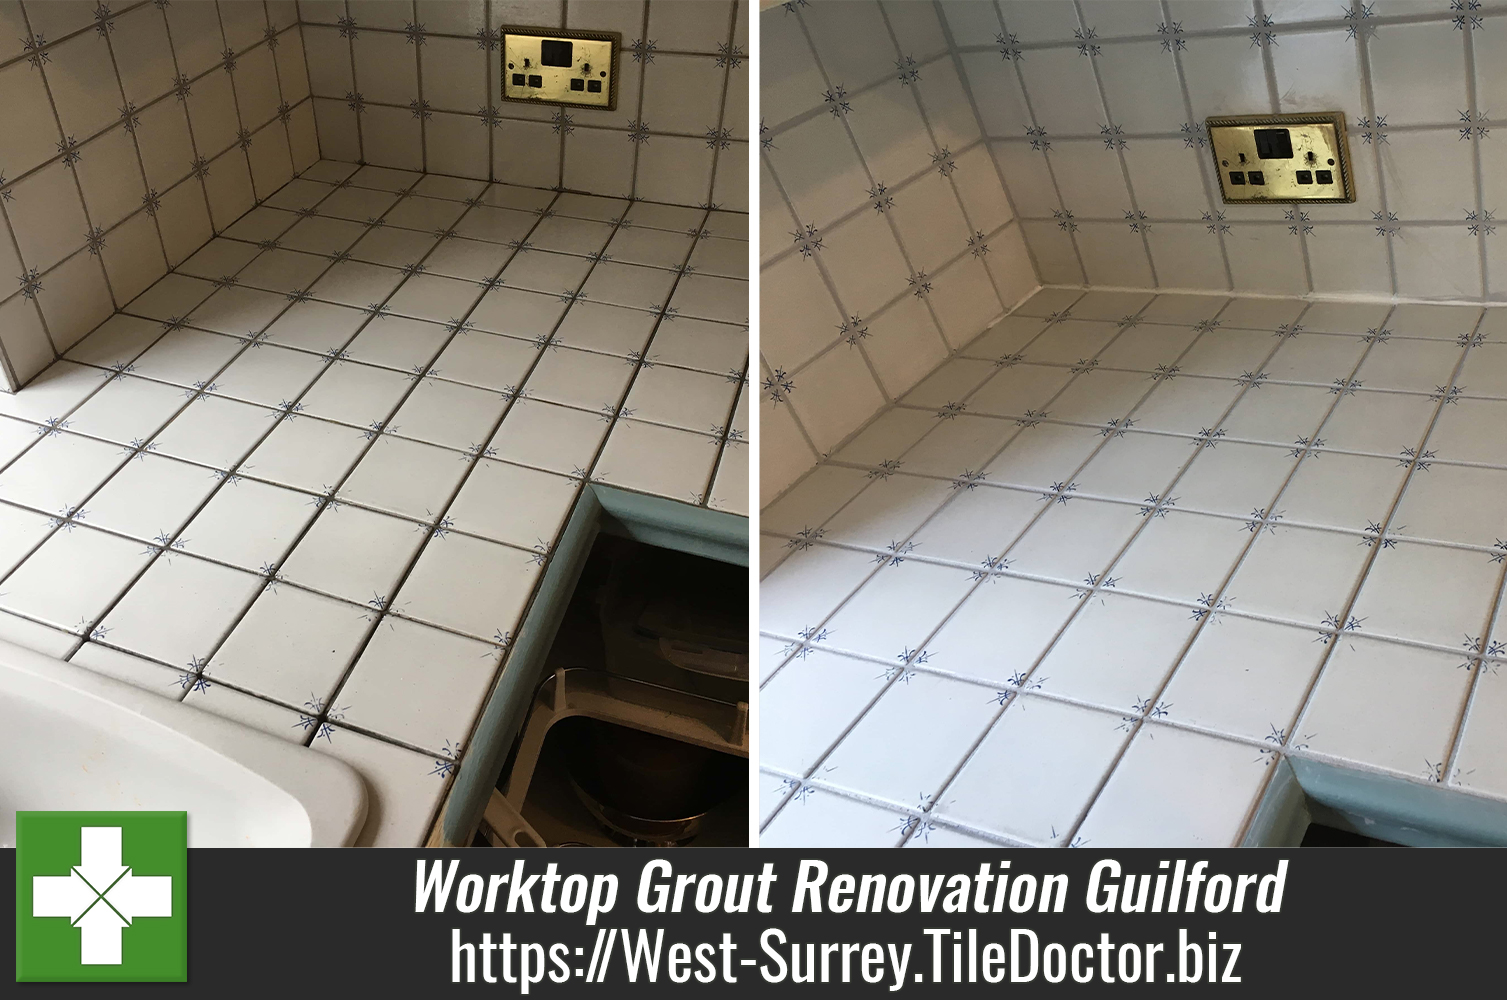 Worktop-Grout-Before-After-Renovation-Guilford